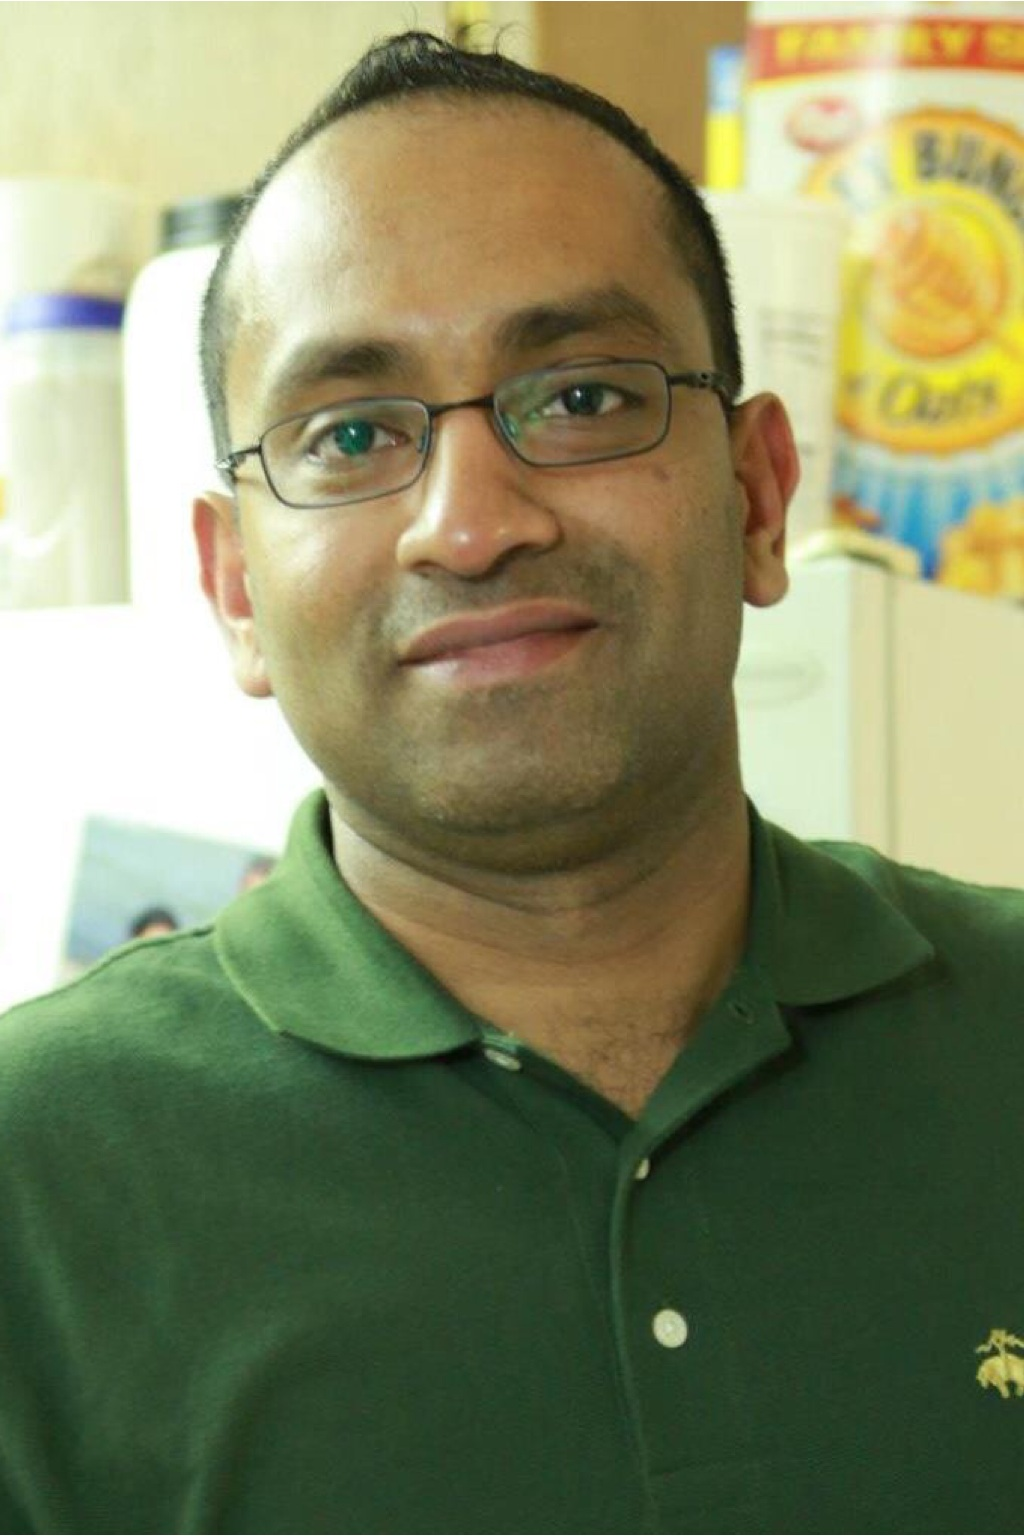 Dr. Rasion S Bose, DDS - Practicing Endodontist in Milwaukee, worked at University of Texas